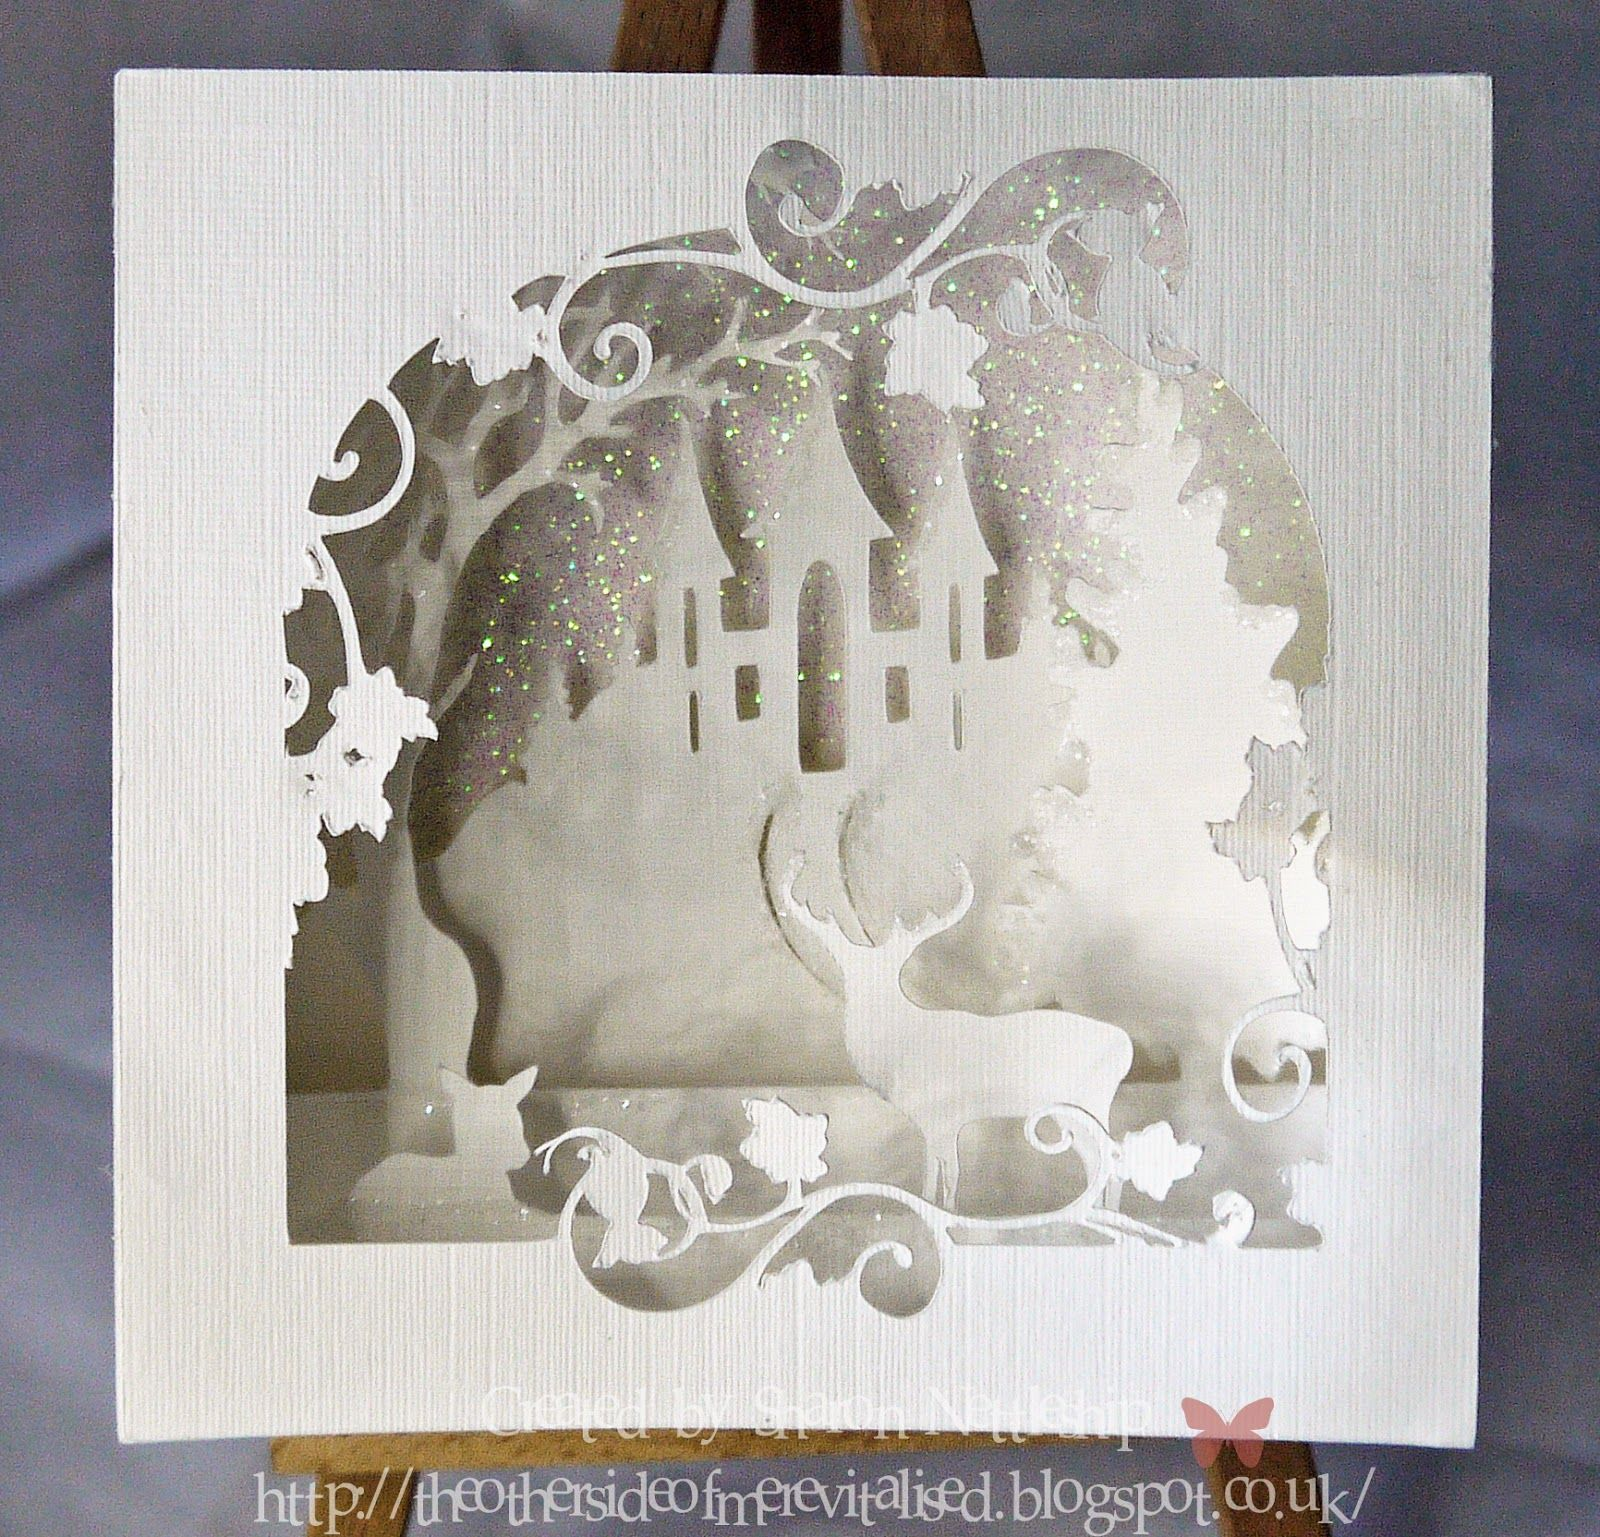 The other side of me Crafty SVG Designs 3D layered